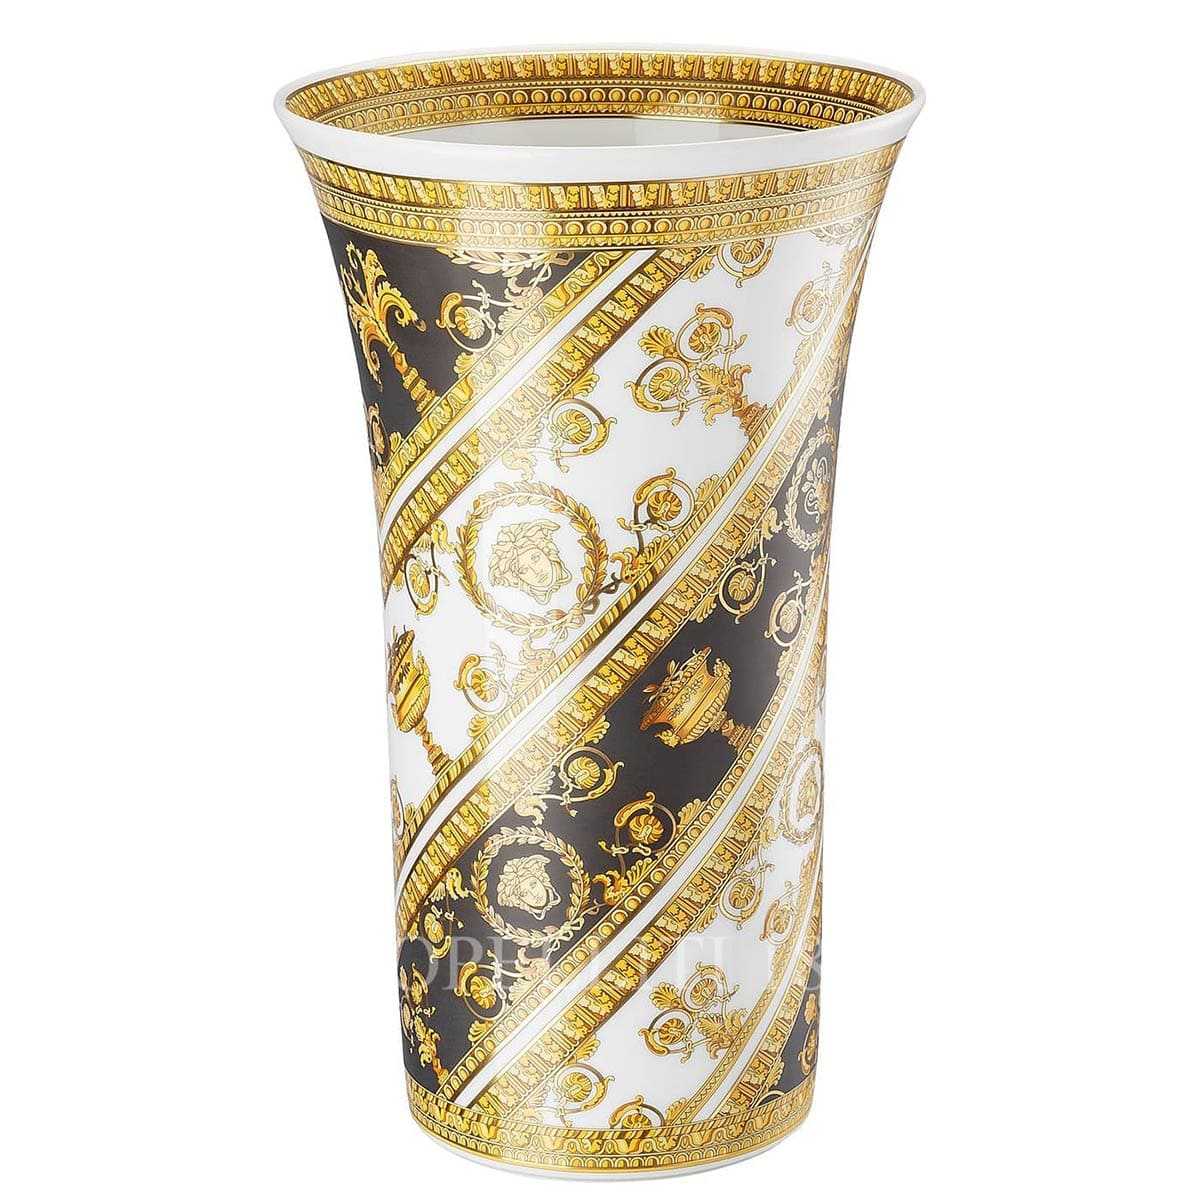 versace i love baroque vase golden large